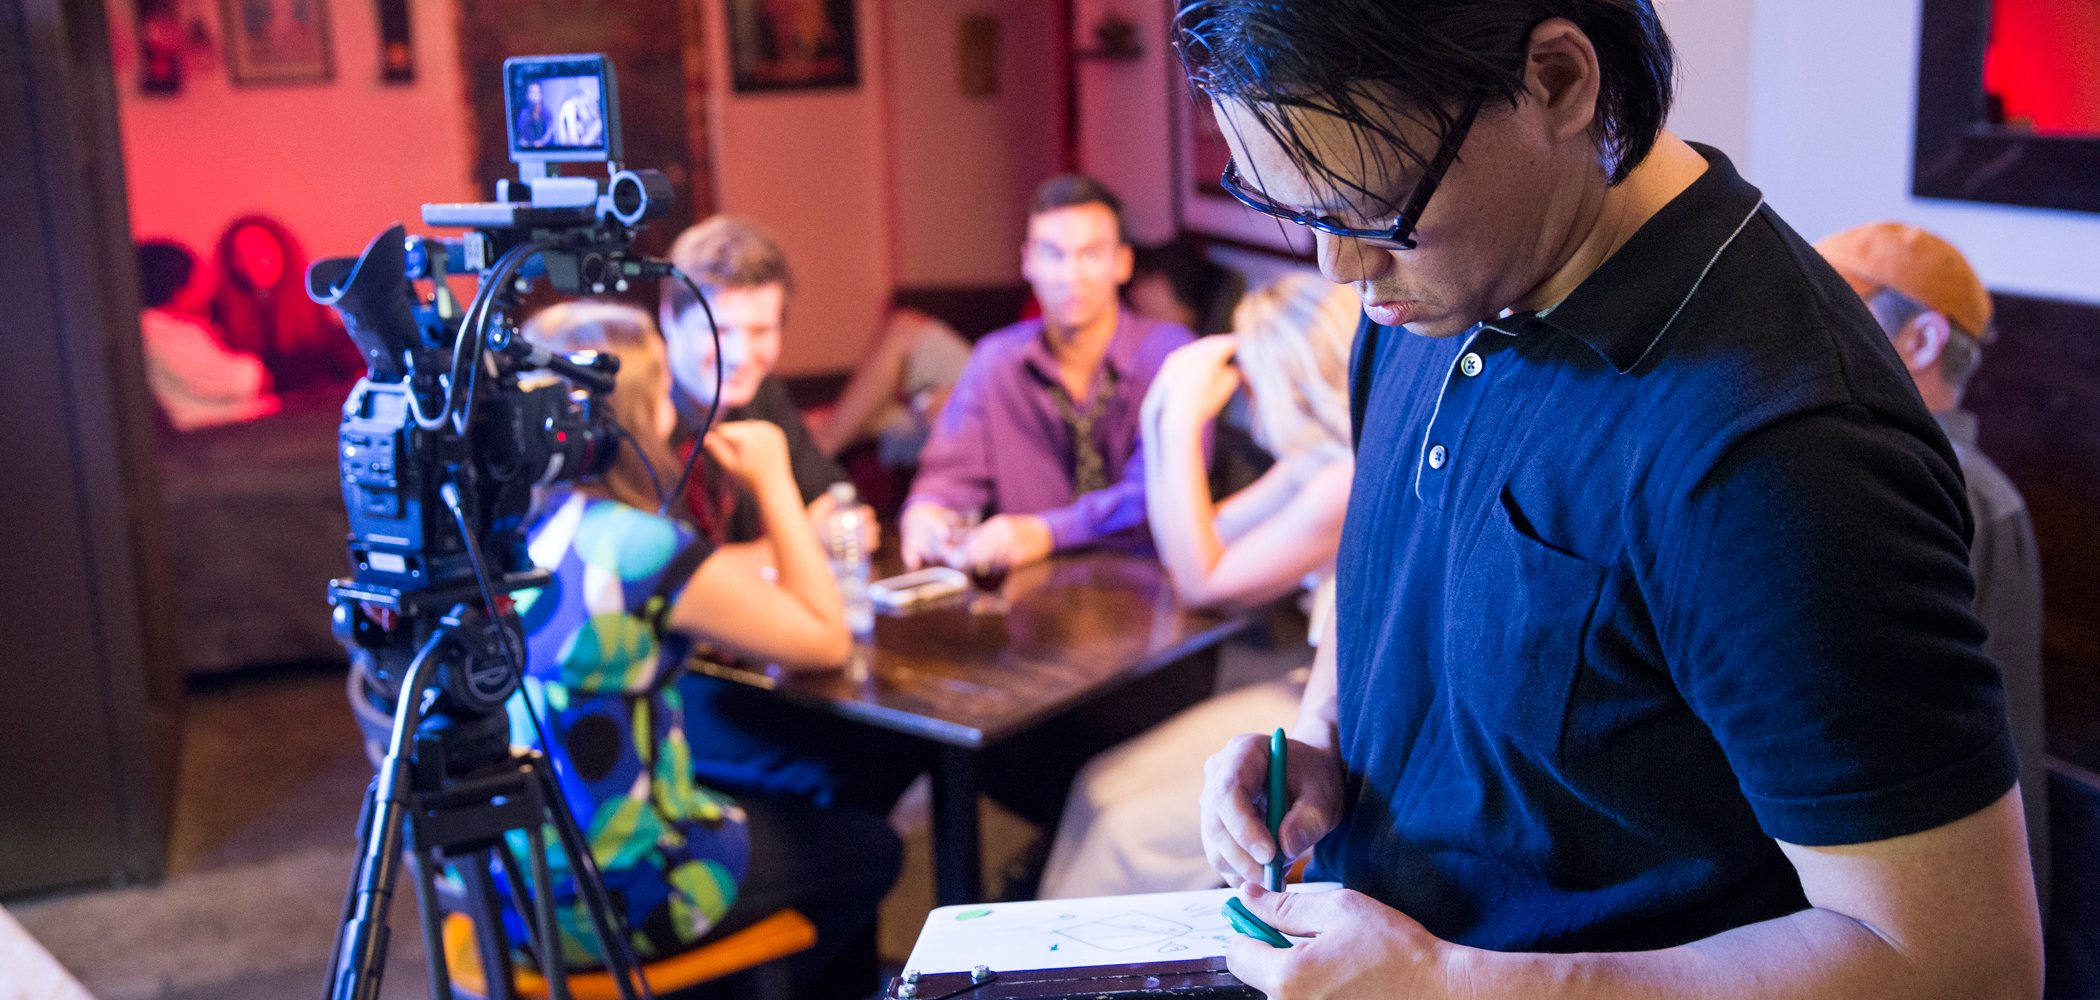 Behind the scenes while filming